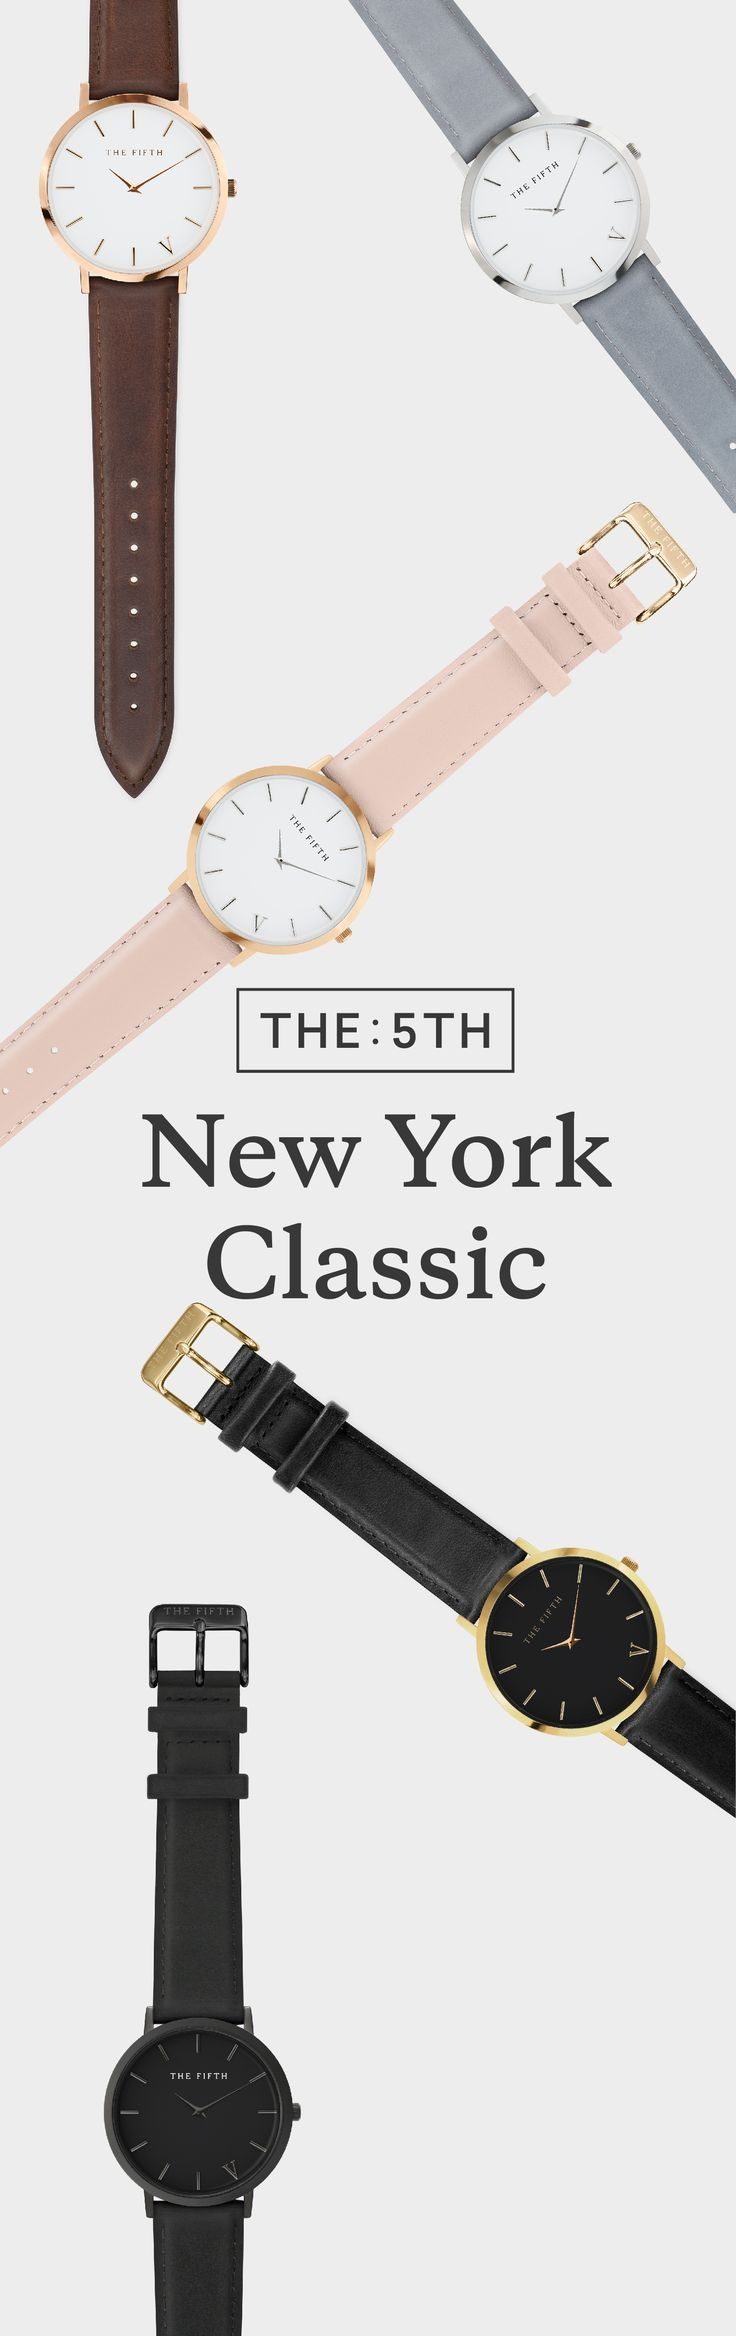 One watch, two looks. Each watch from the New York range comes with an additional strap. That's two looks, for the price of one. Exclusively available once a month, for a limited 5 days only. Sign up today to ensure you don't miss out on the 5th next month. See more at www.the5th.co. Sign up to join the waitlist.